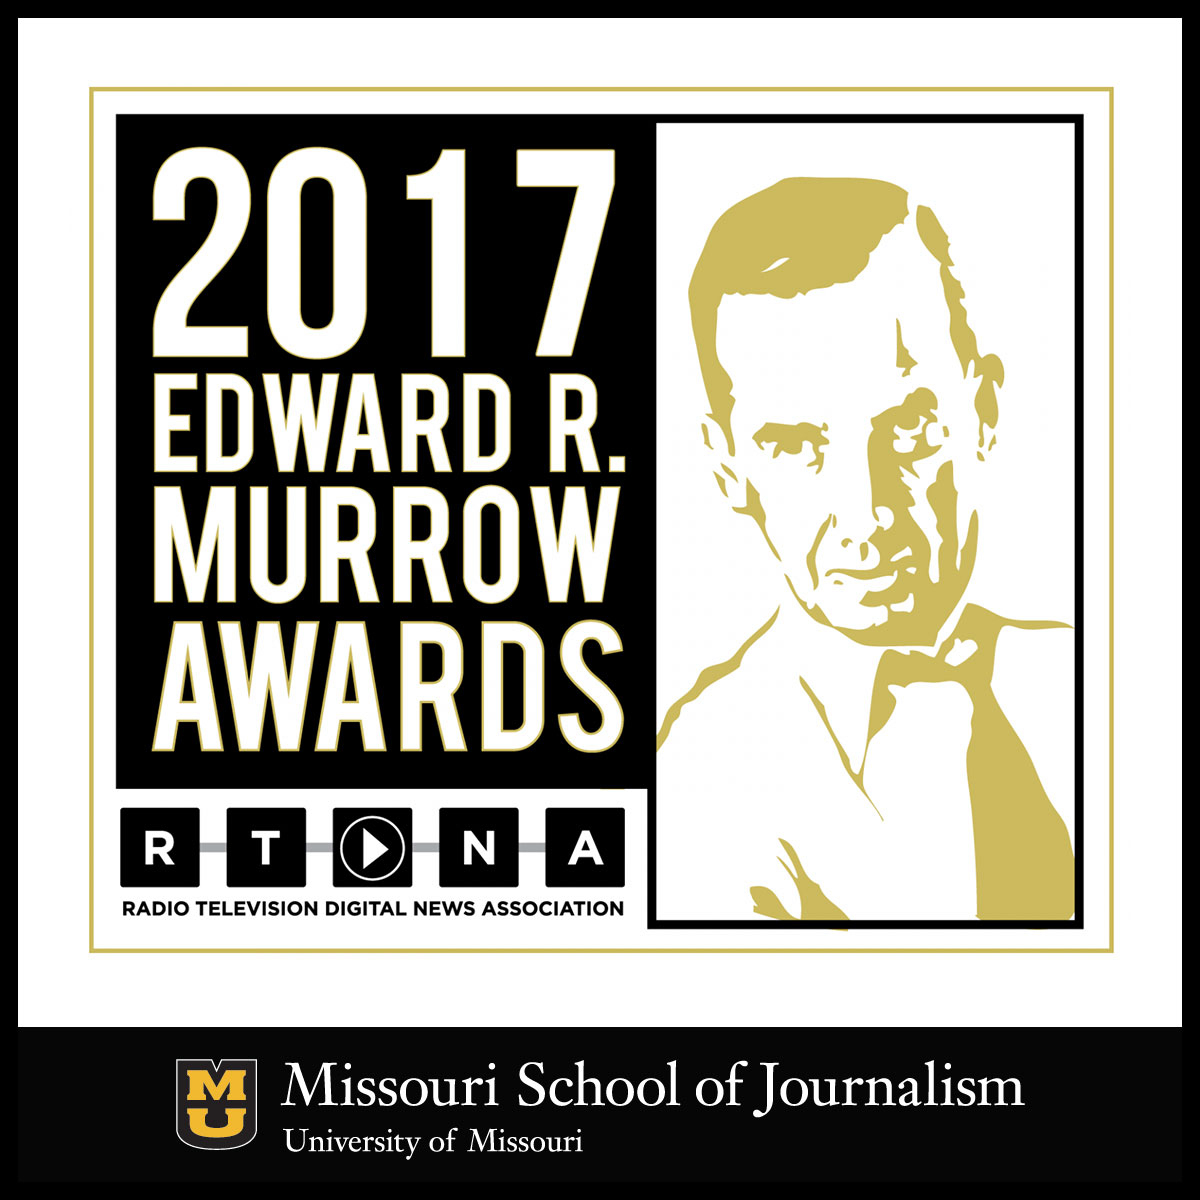 KBIA-FM and KOMU-TV Win 13 Regional Edward R. Murrow Awards